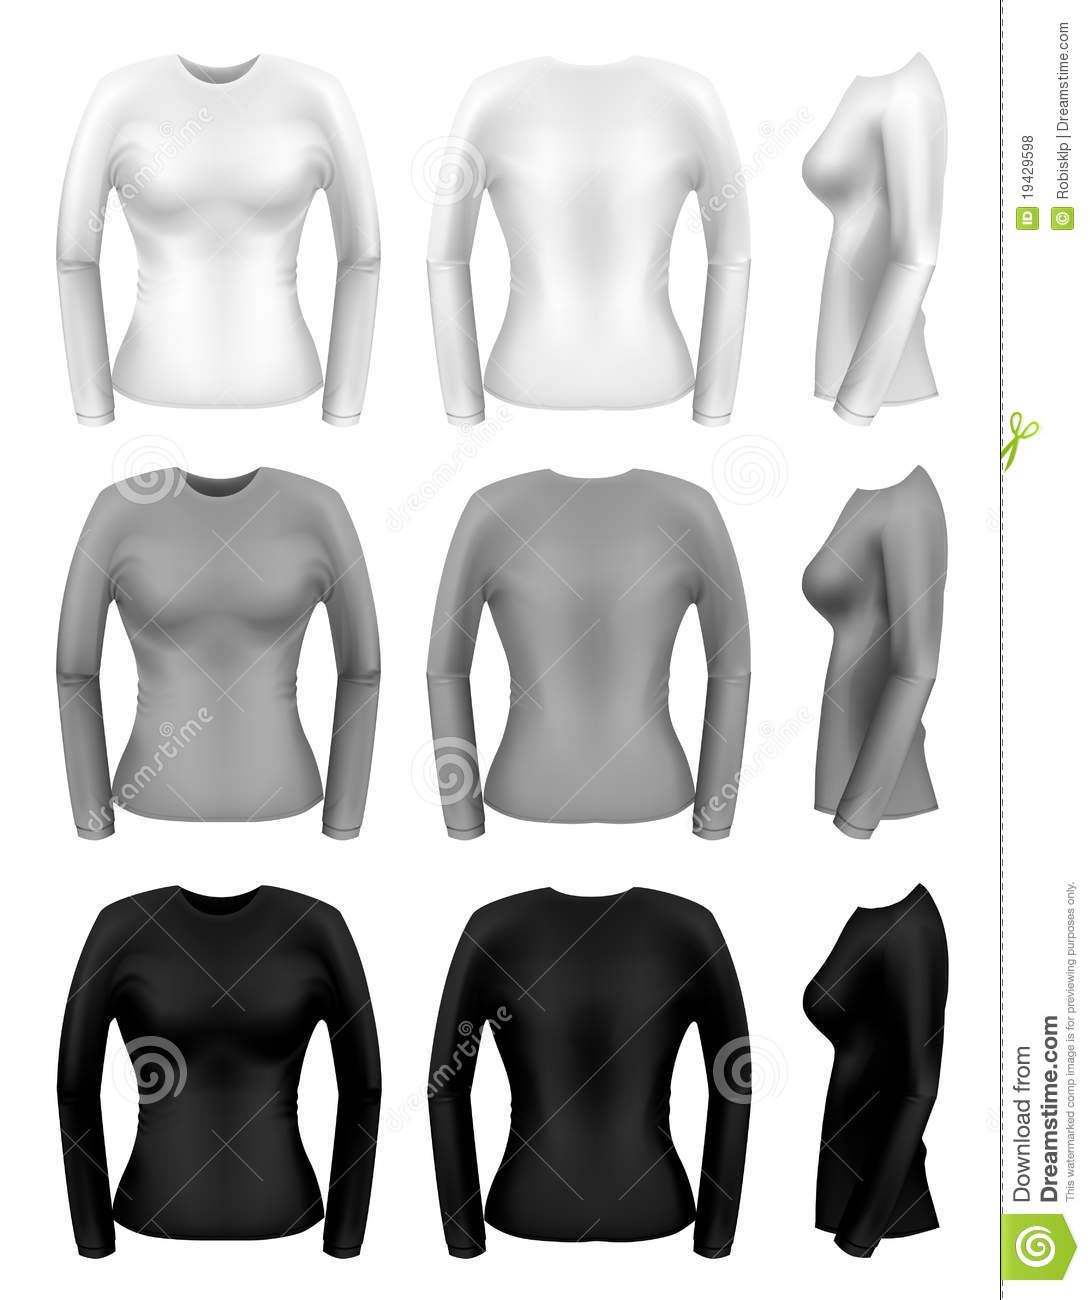 Women Long Sleeve T-shirts Royalty Free Stock Photos - Image: 19429598